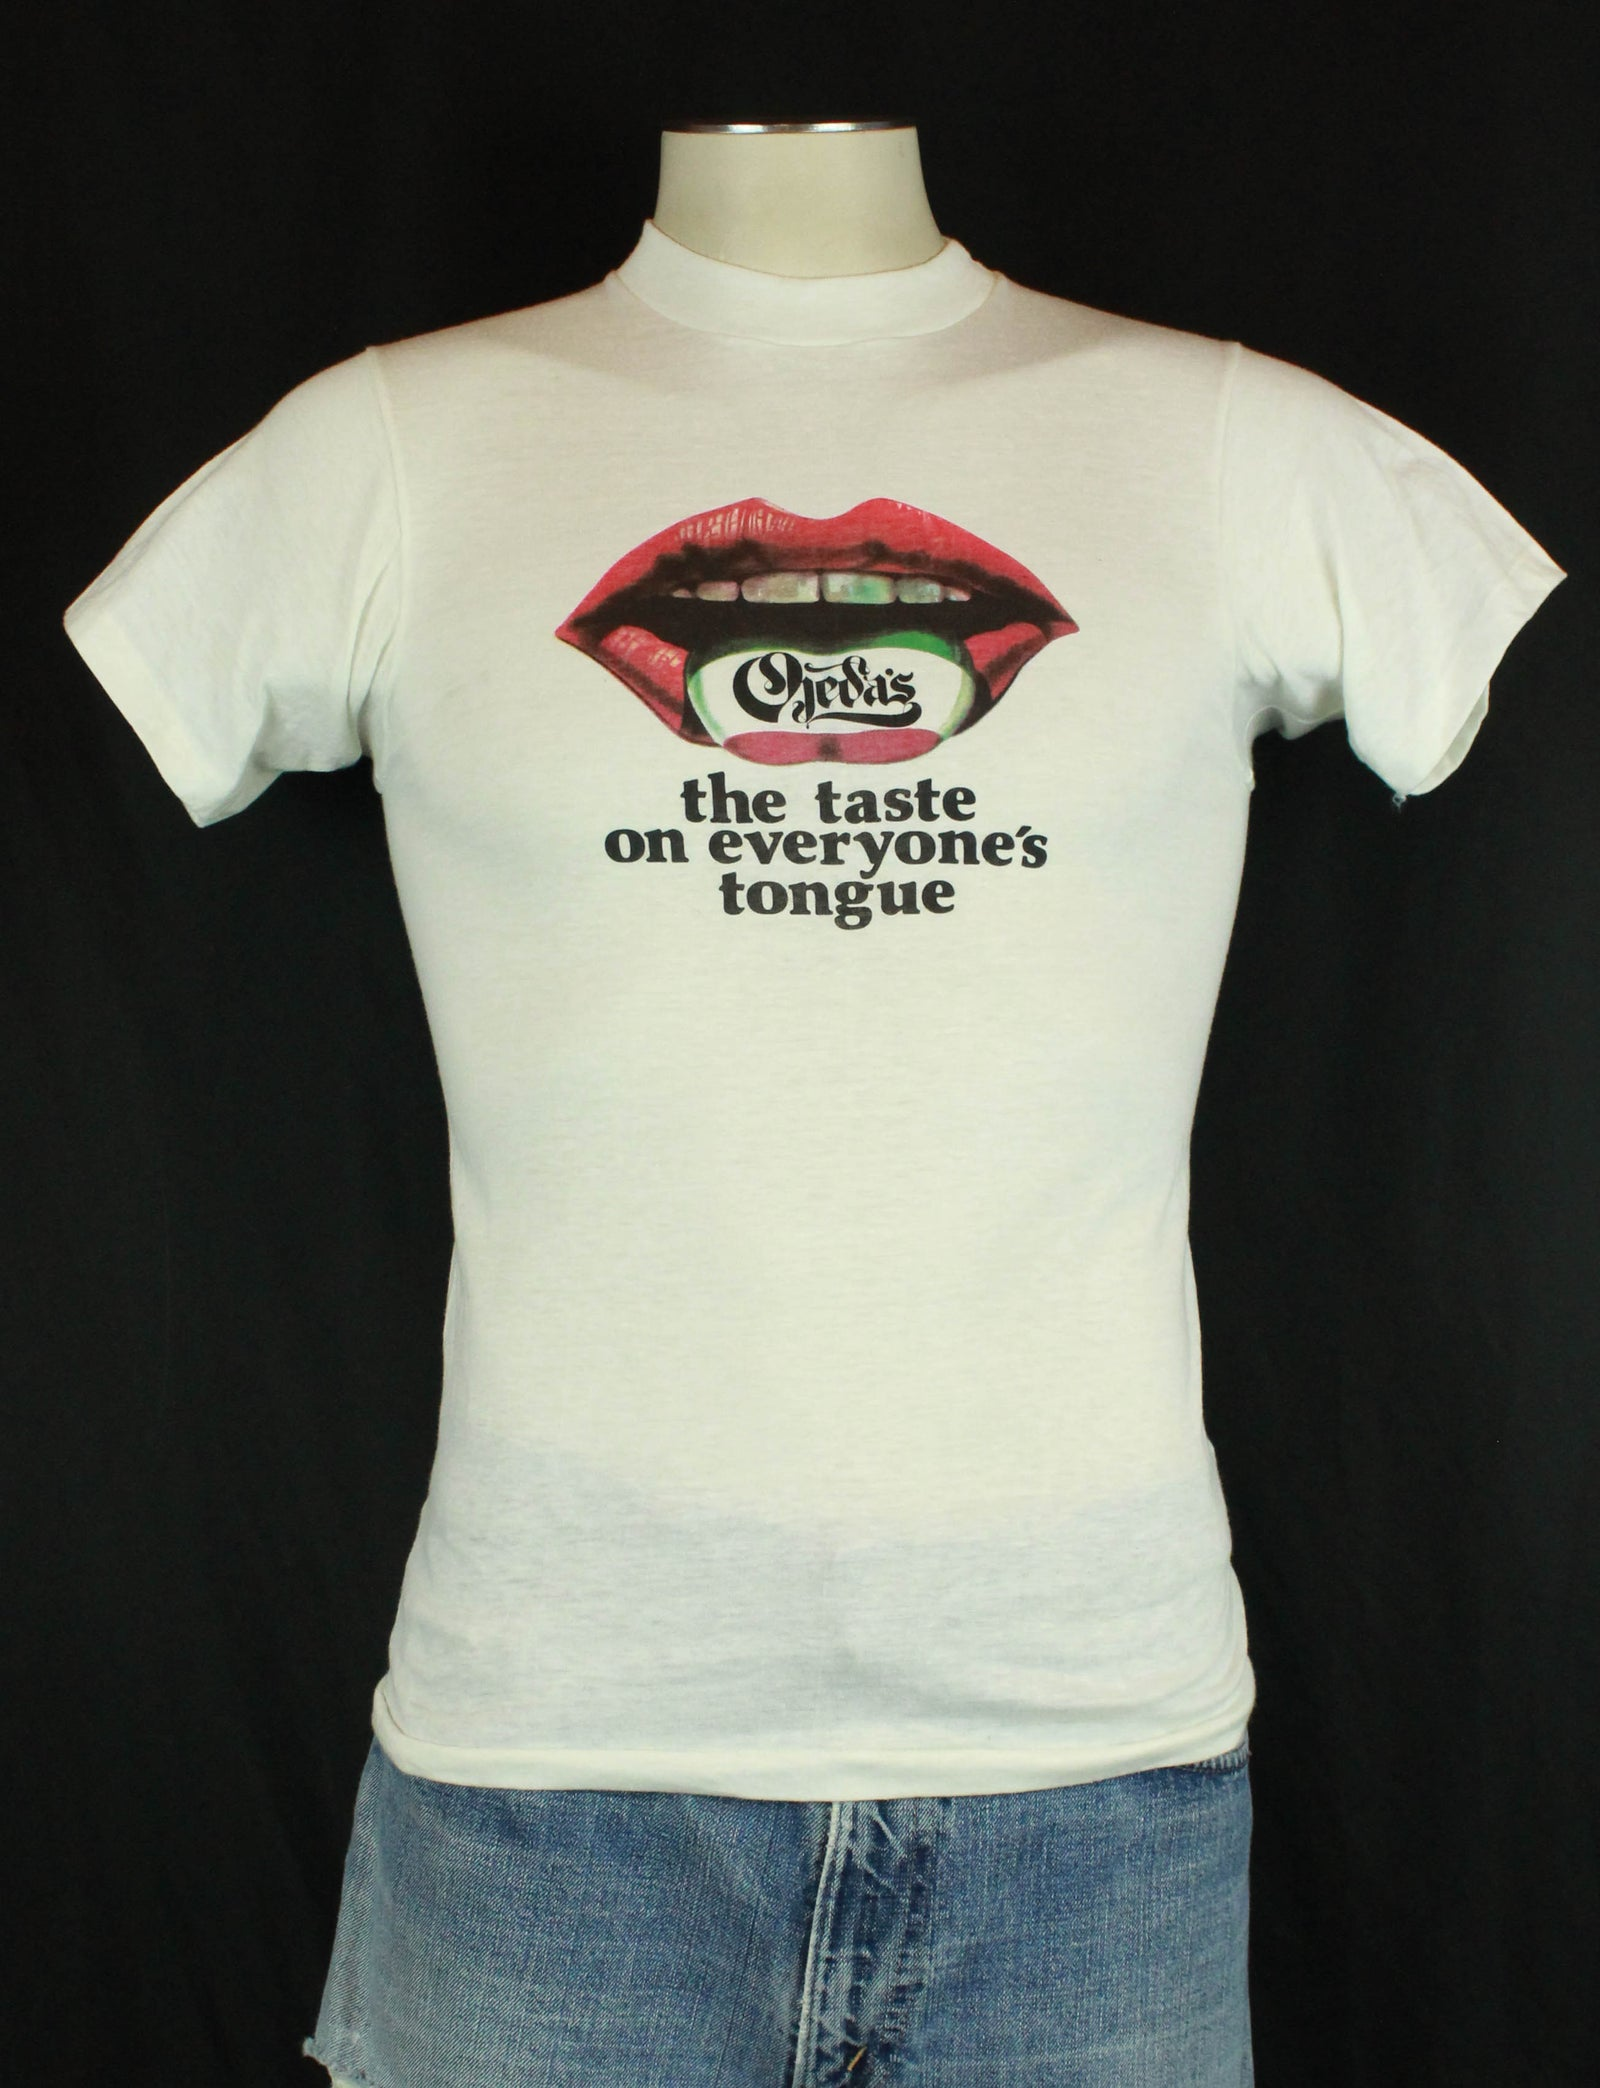 Vintage 80's Ojeda's The Taste On Everyone's Tongue Graphic T Shirt - Small